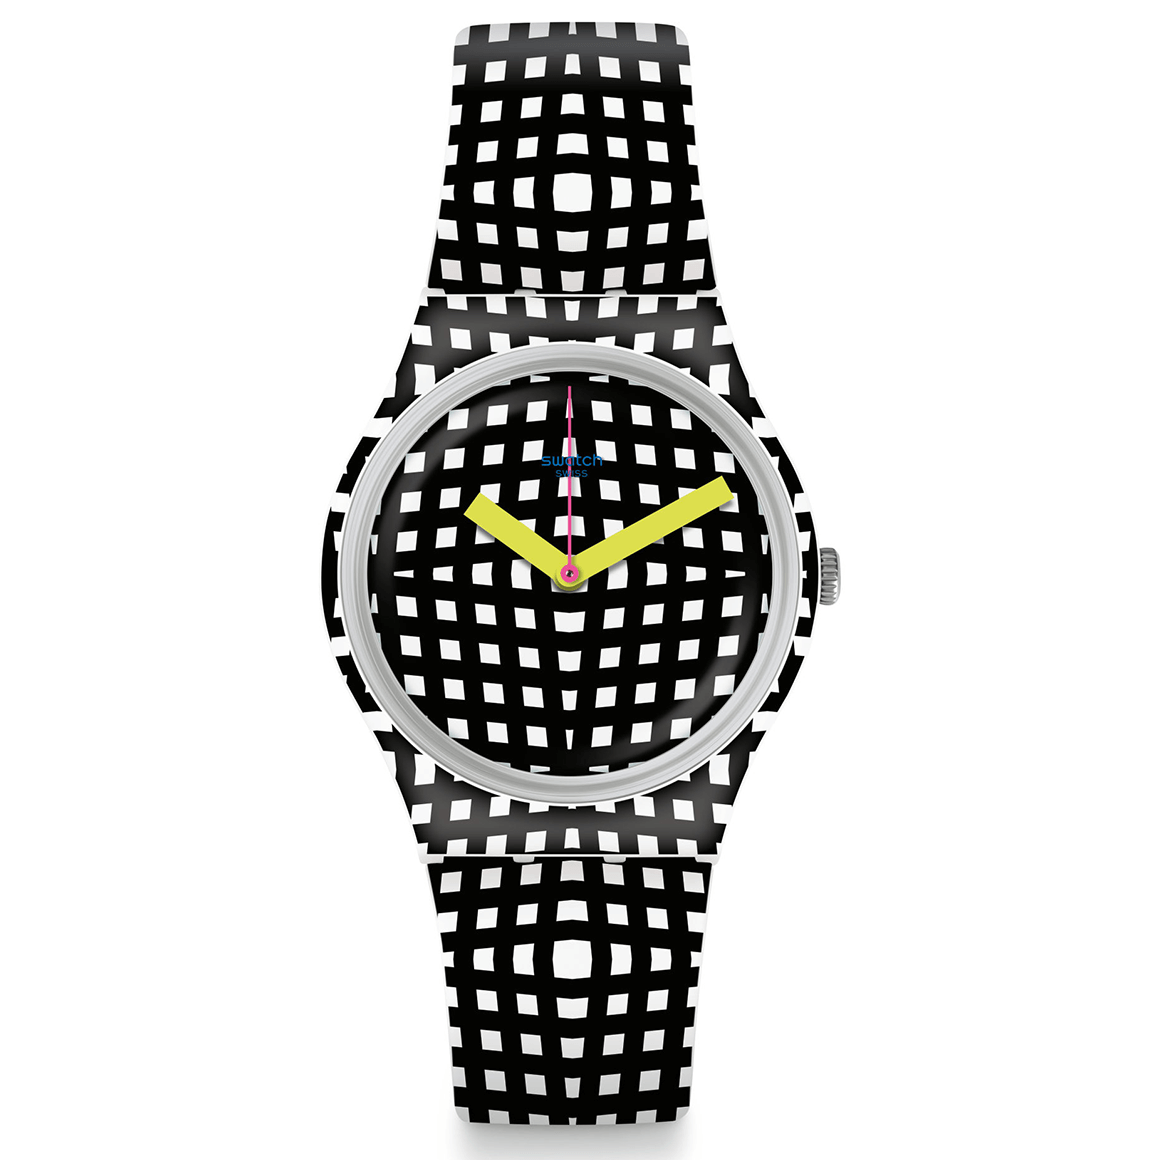 Swatch Sixtease watch